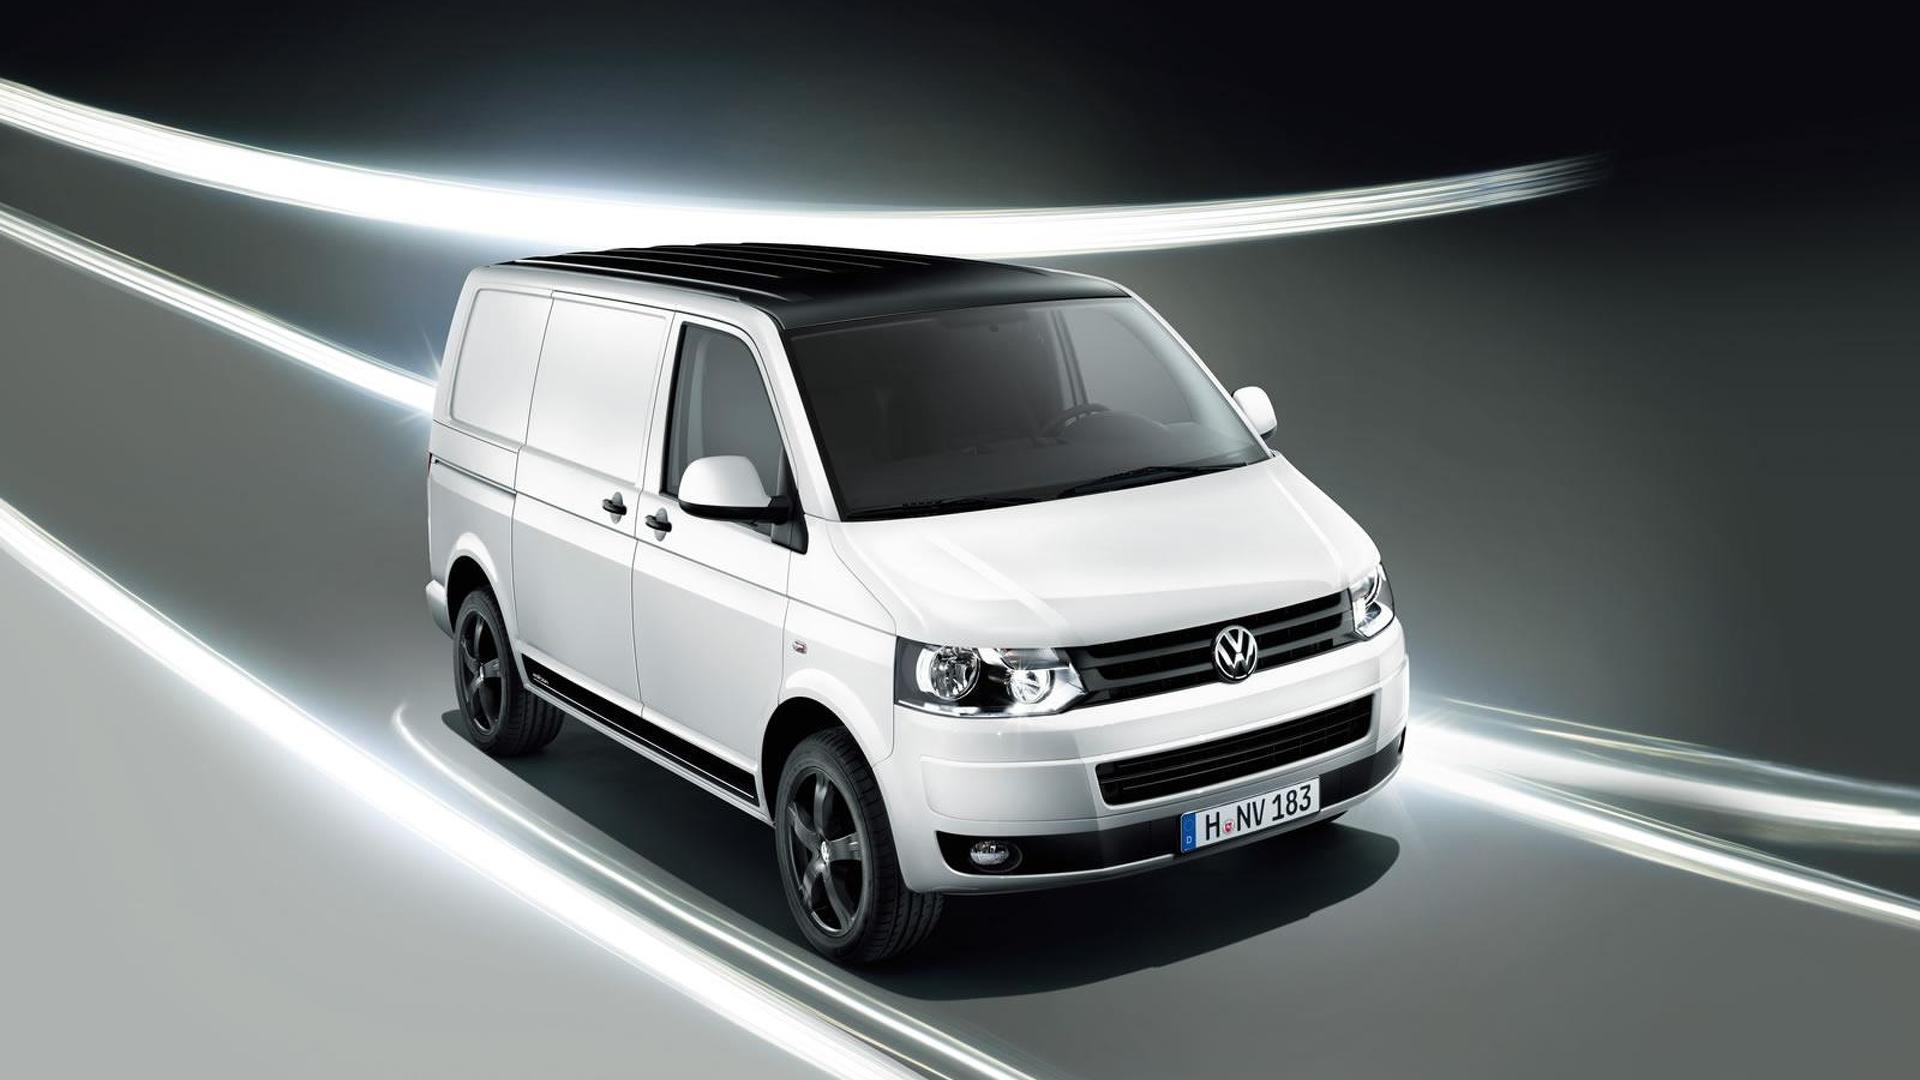 Volkswagen Transporter Edition revealed